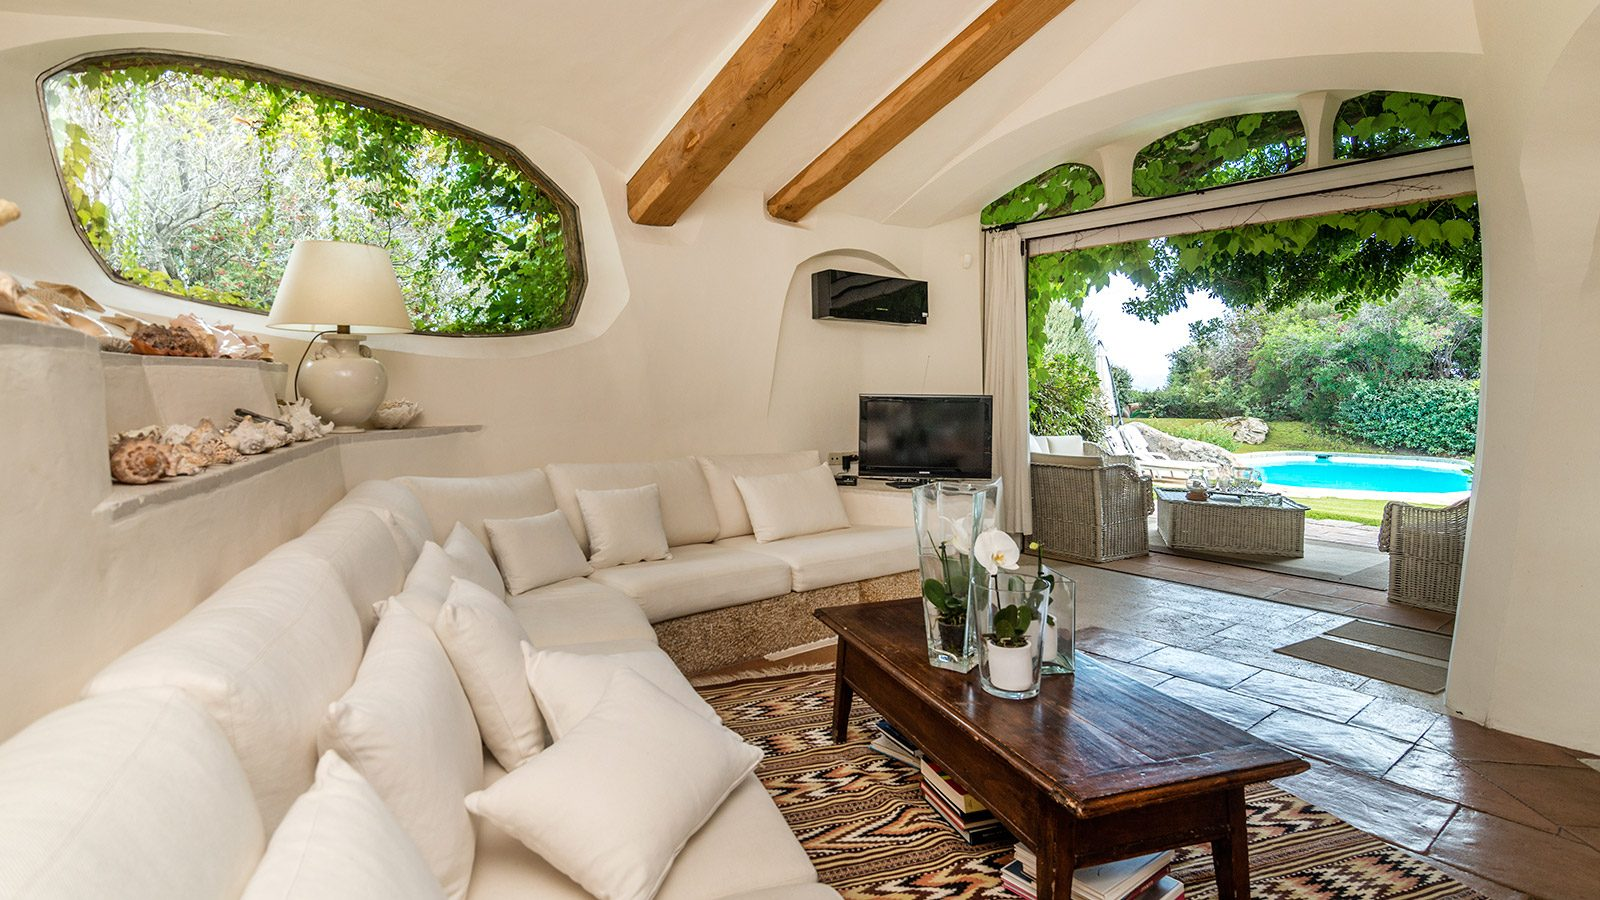 Covered lounge with views